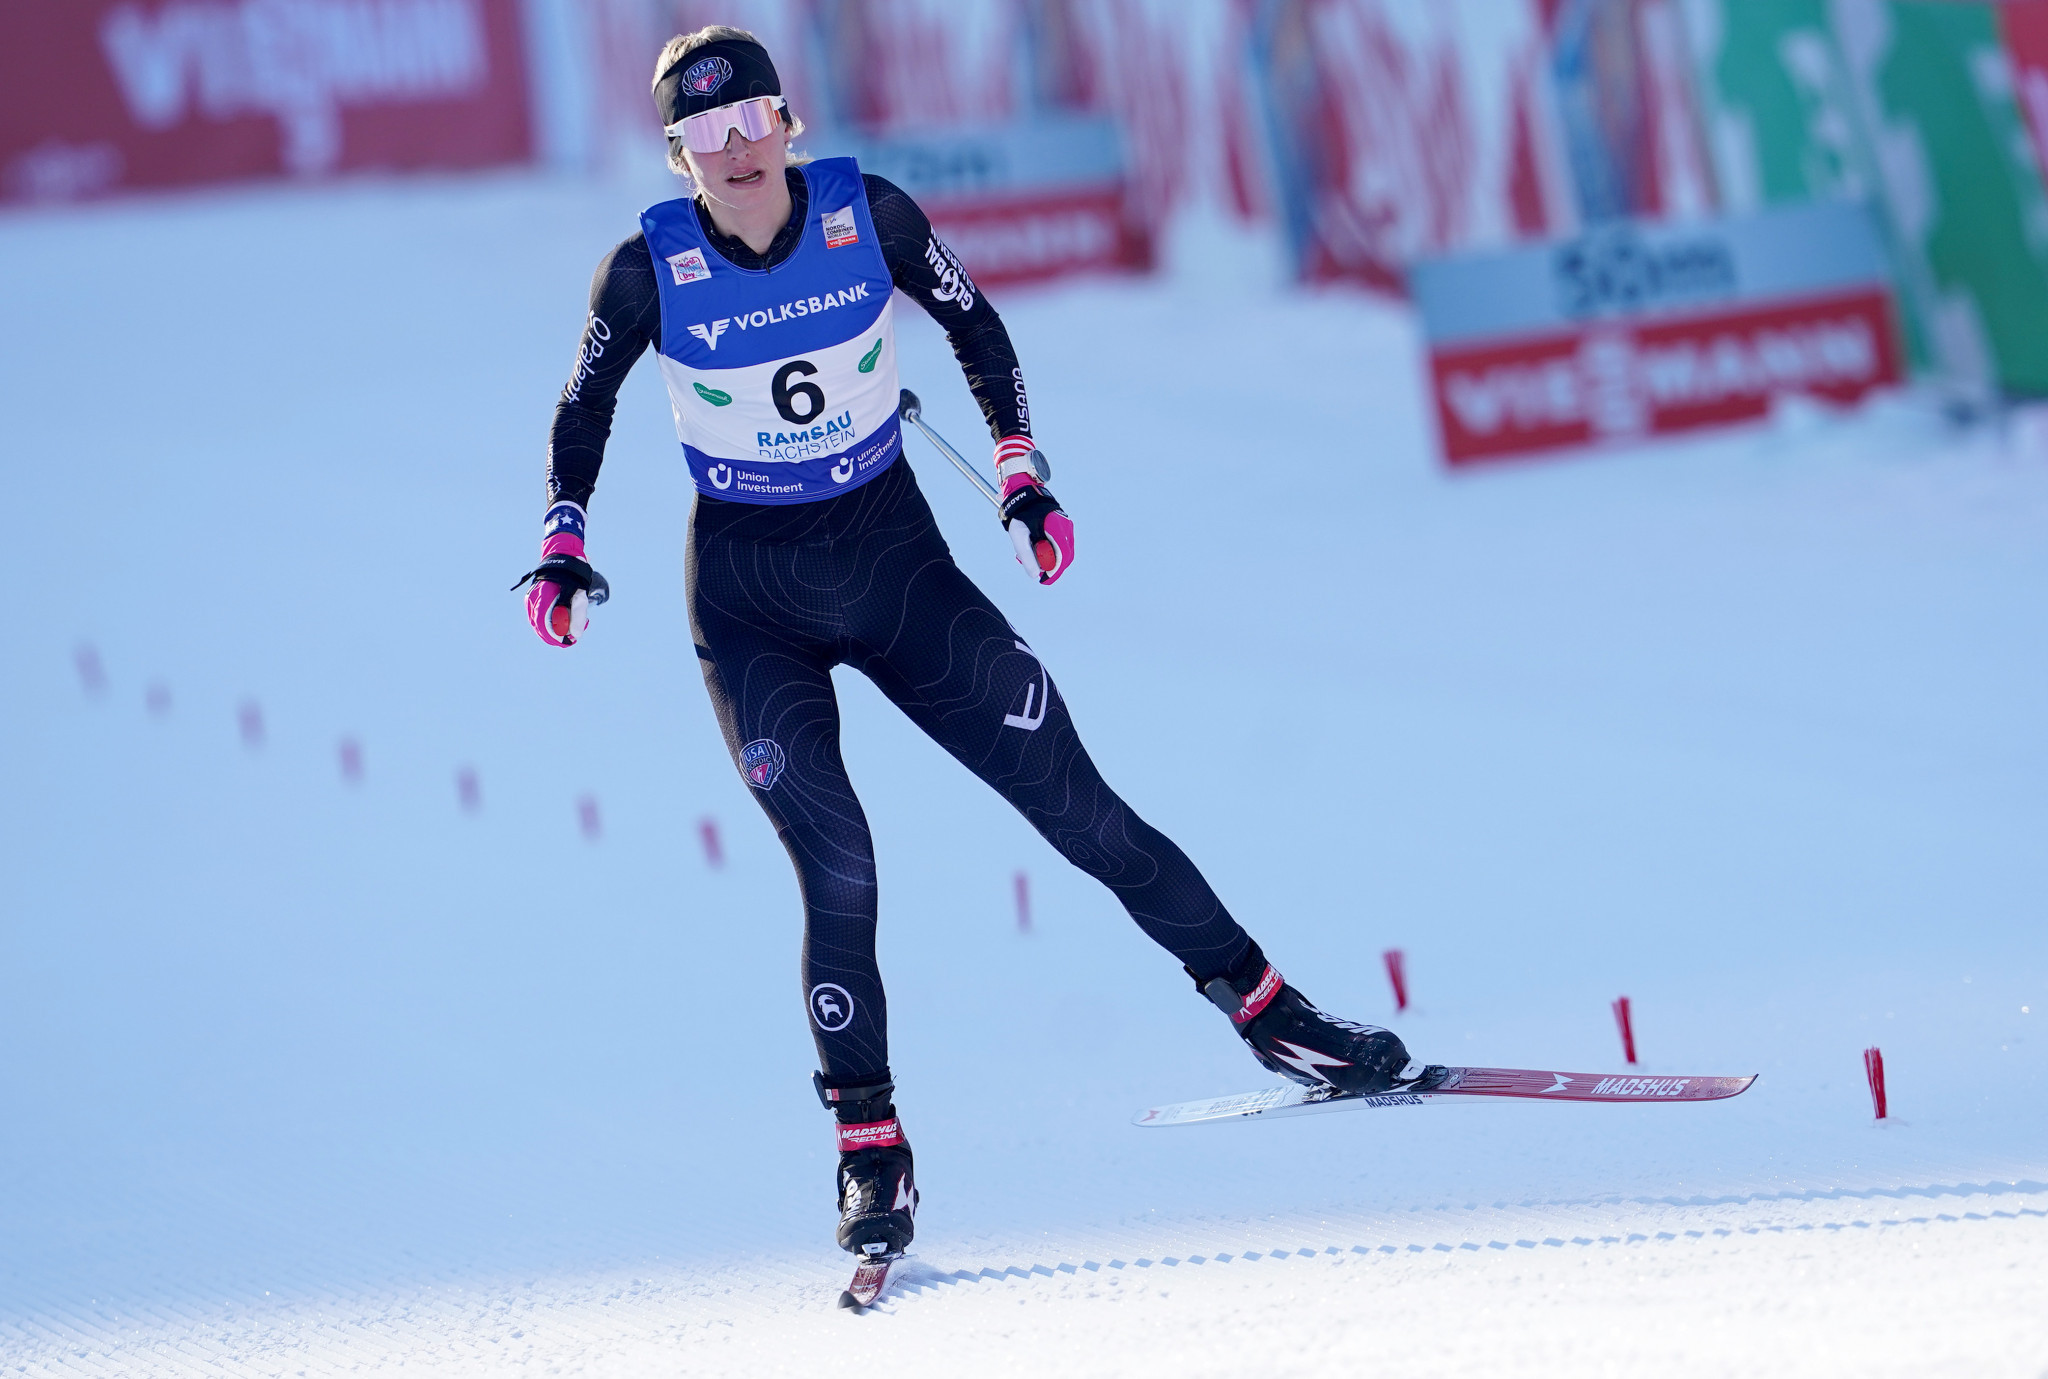 Geraghty-Moats wins inaugural FIS Women's Nordic Combined World Cup event